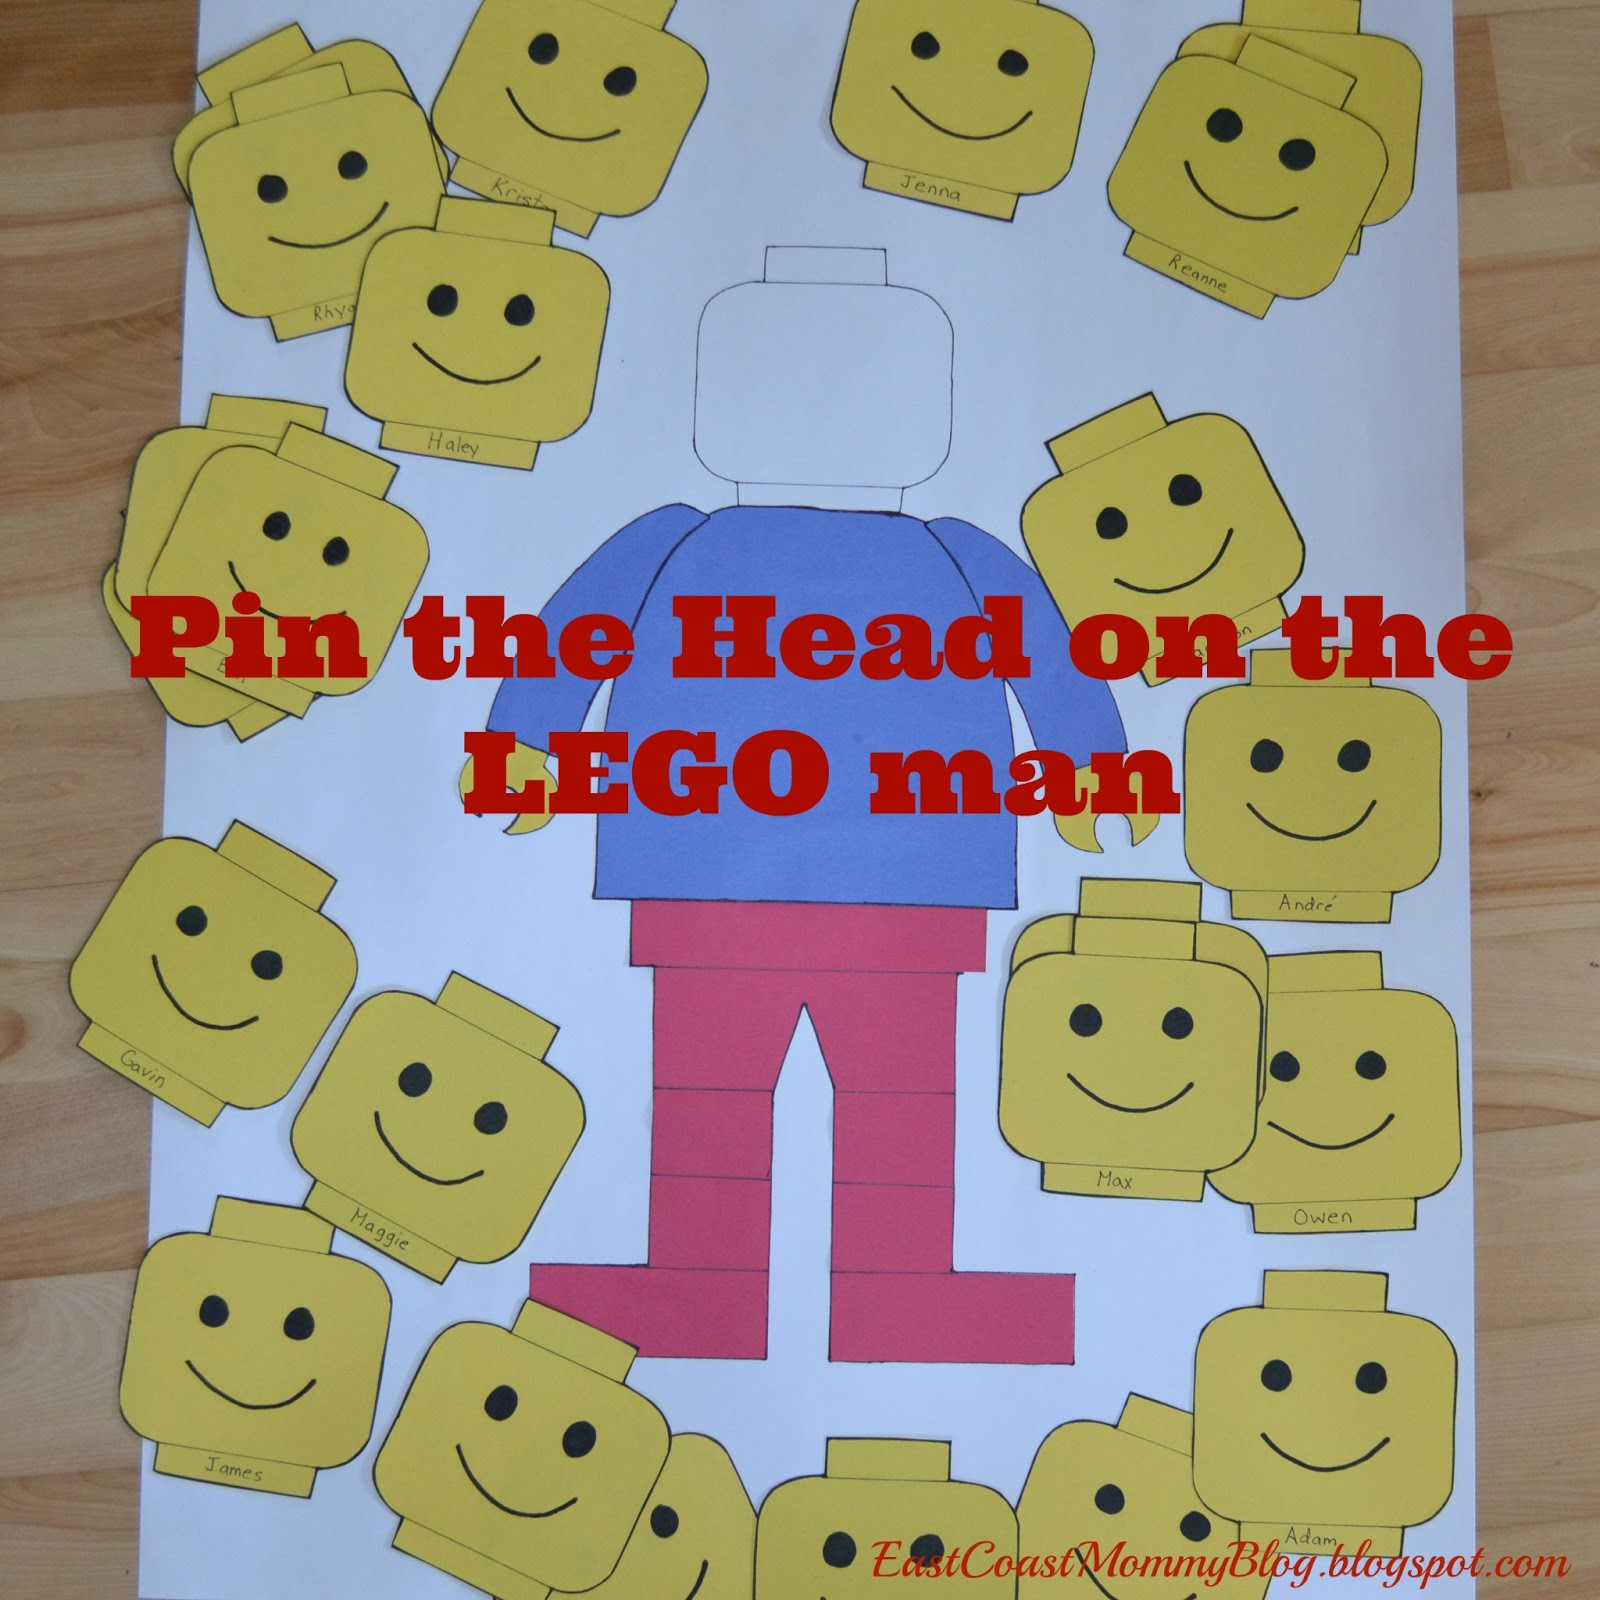 Rare image pertaining to lego party printable